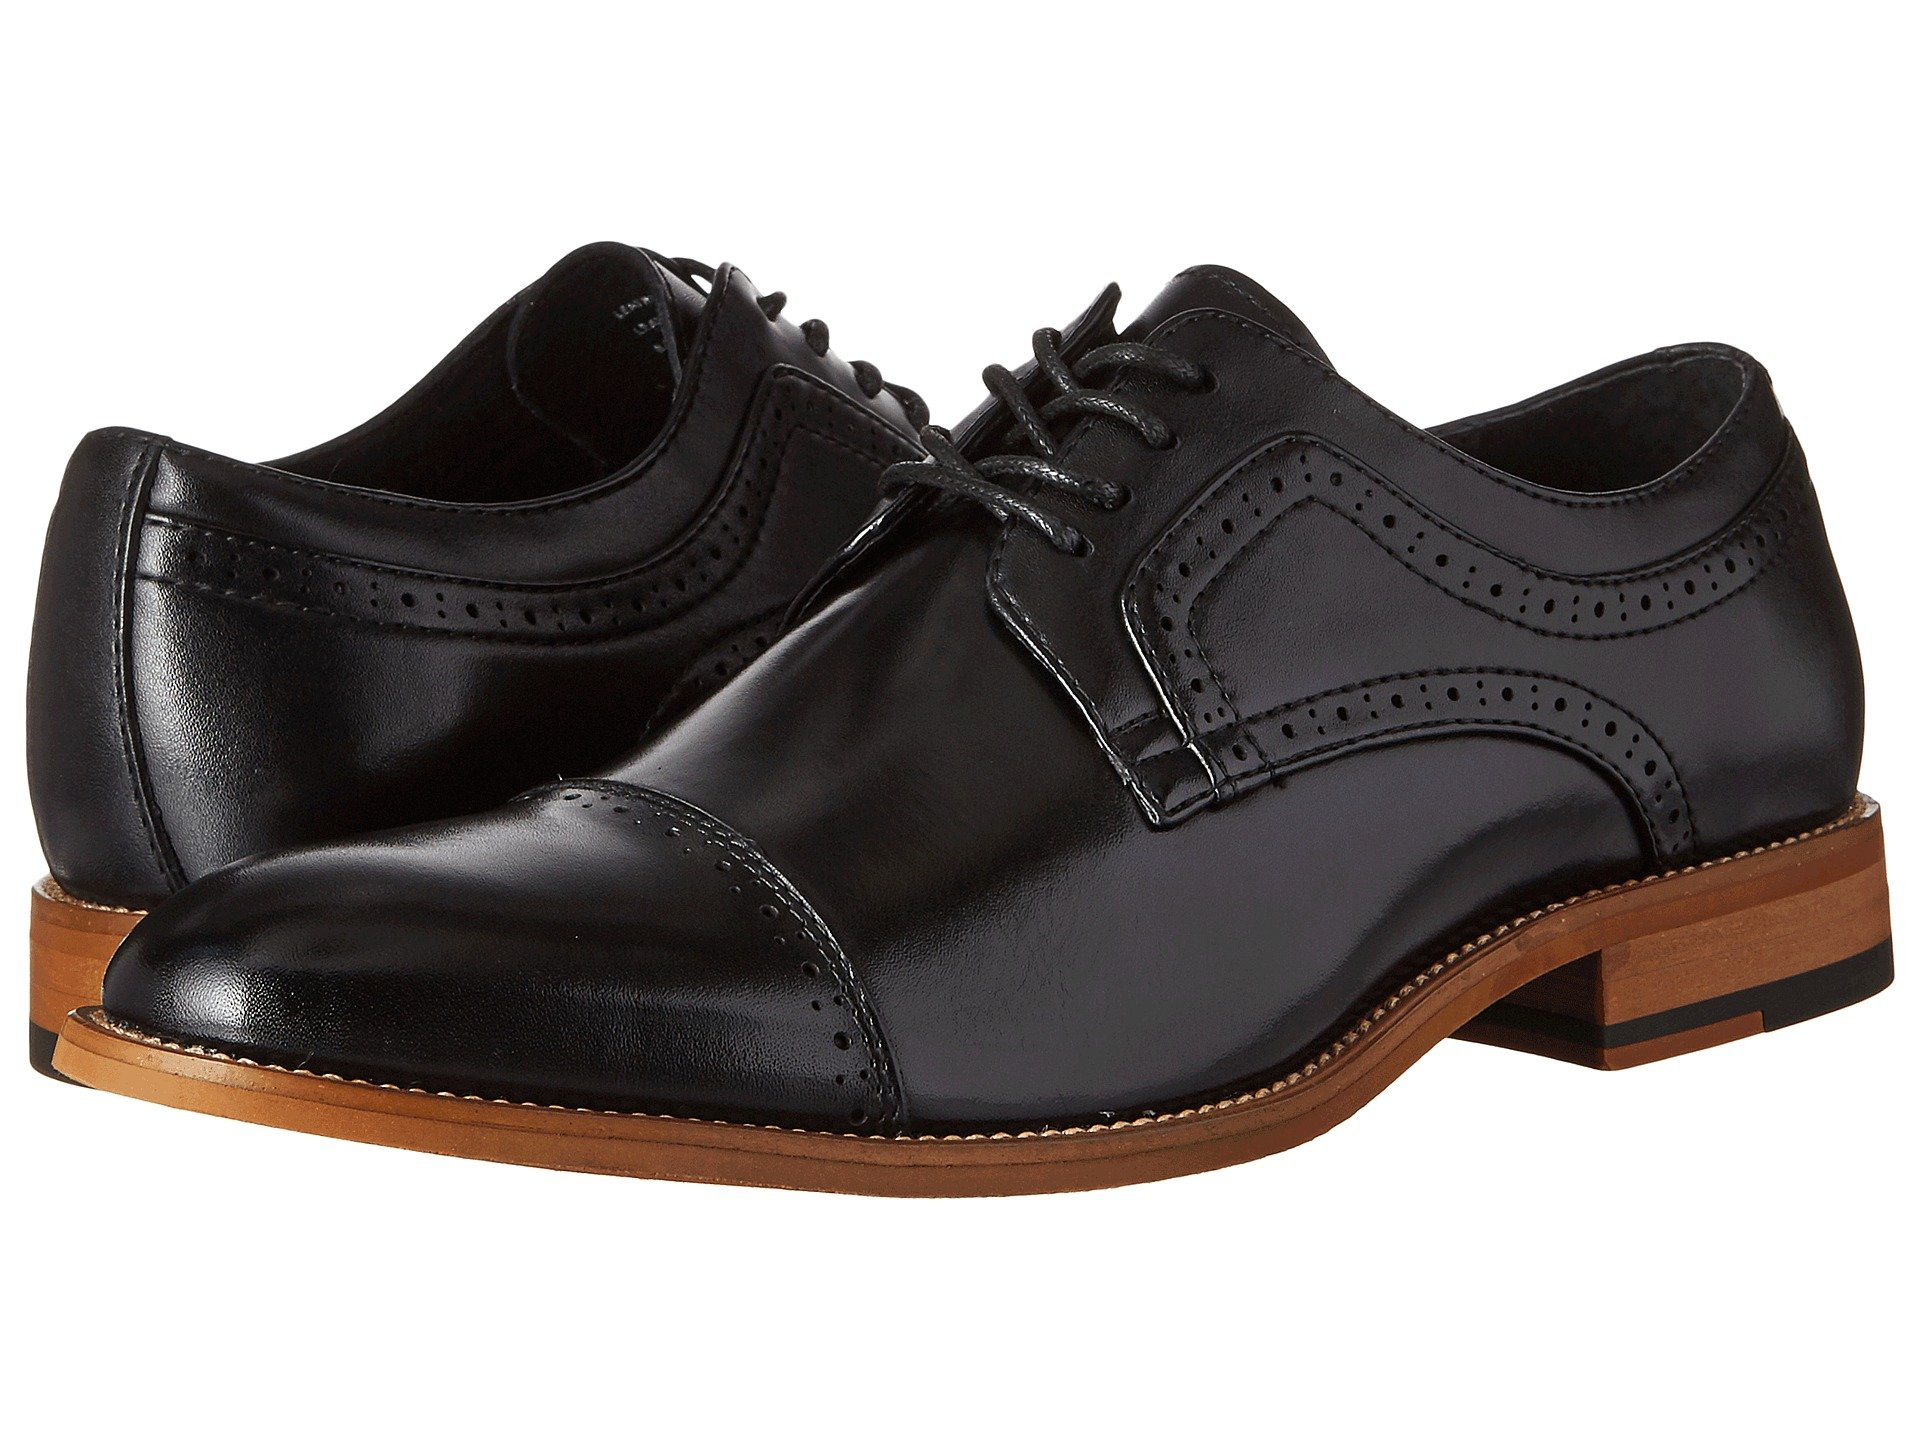 c91b5e25b81 Men's Stacy Adams Shoes + FREE SHIPPING | Zappos.com